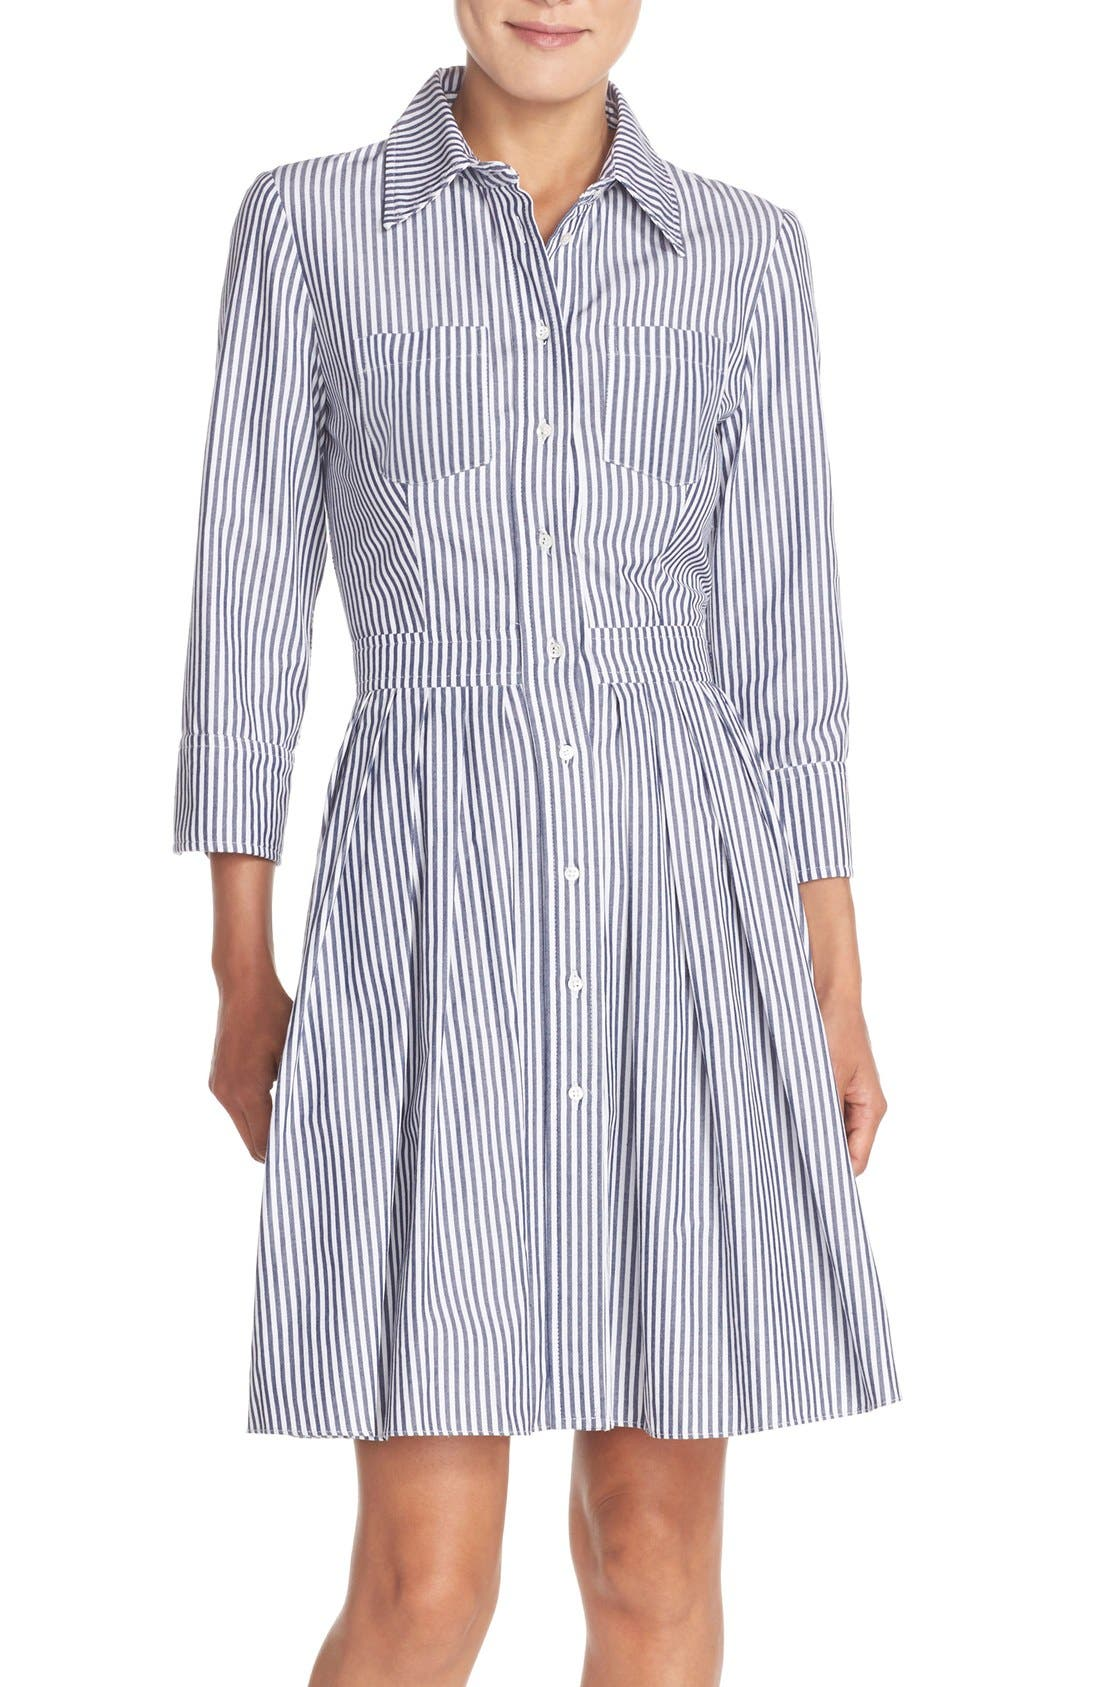 Eliza J Stripe Cotton Shirtdress (Regular & Petite)